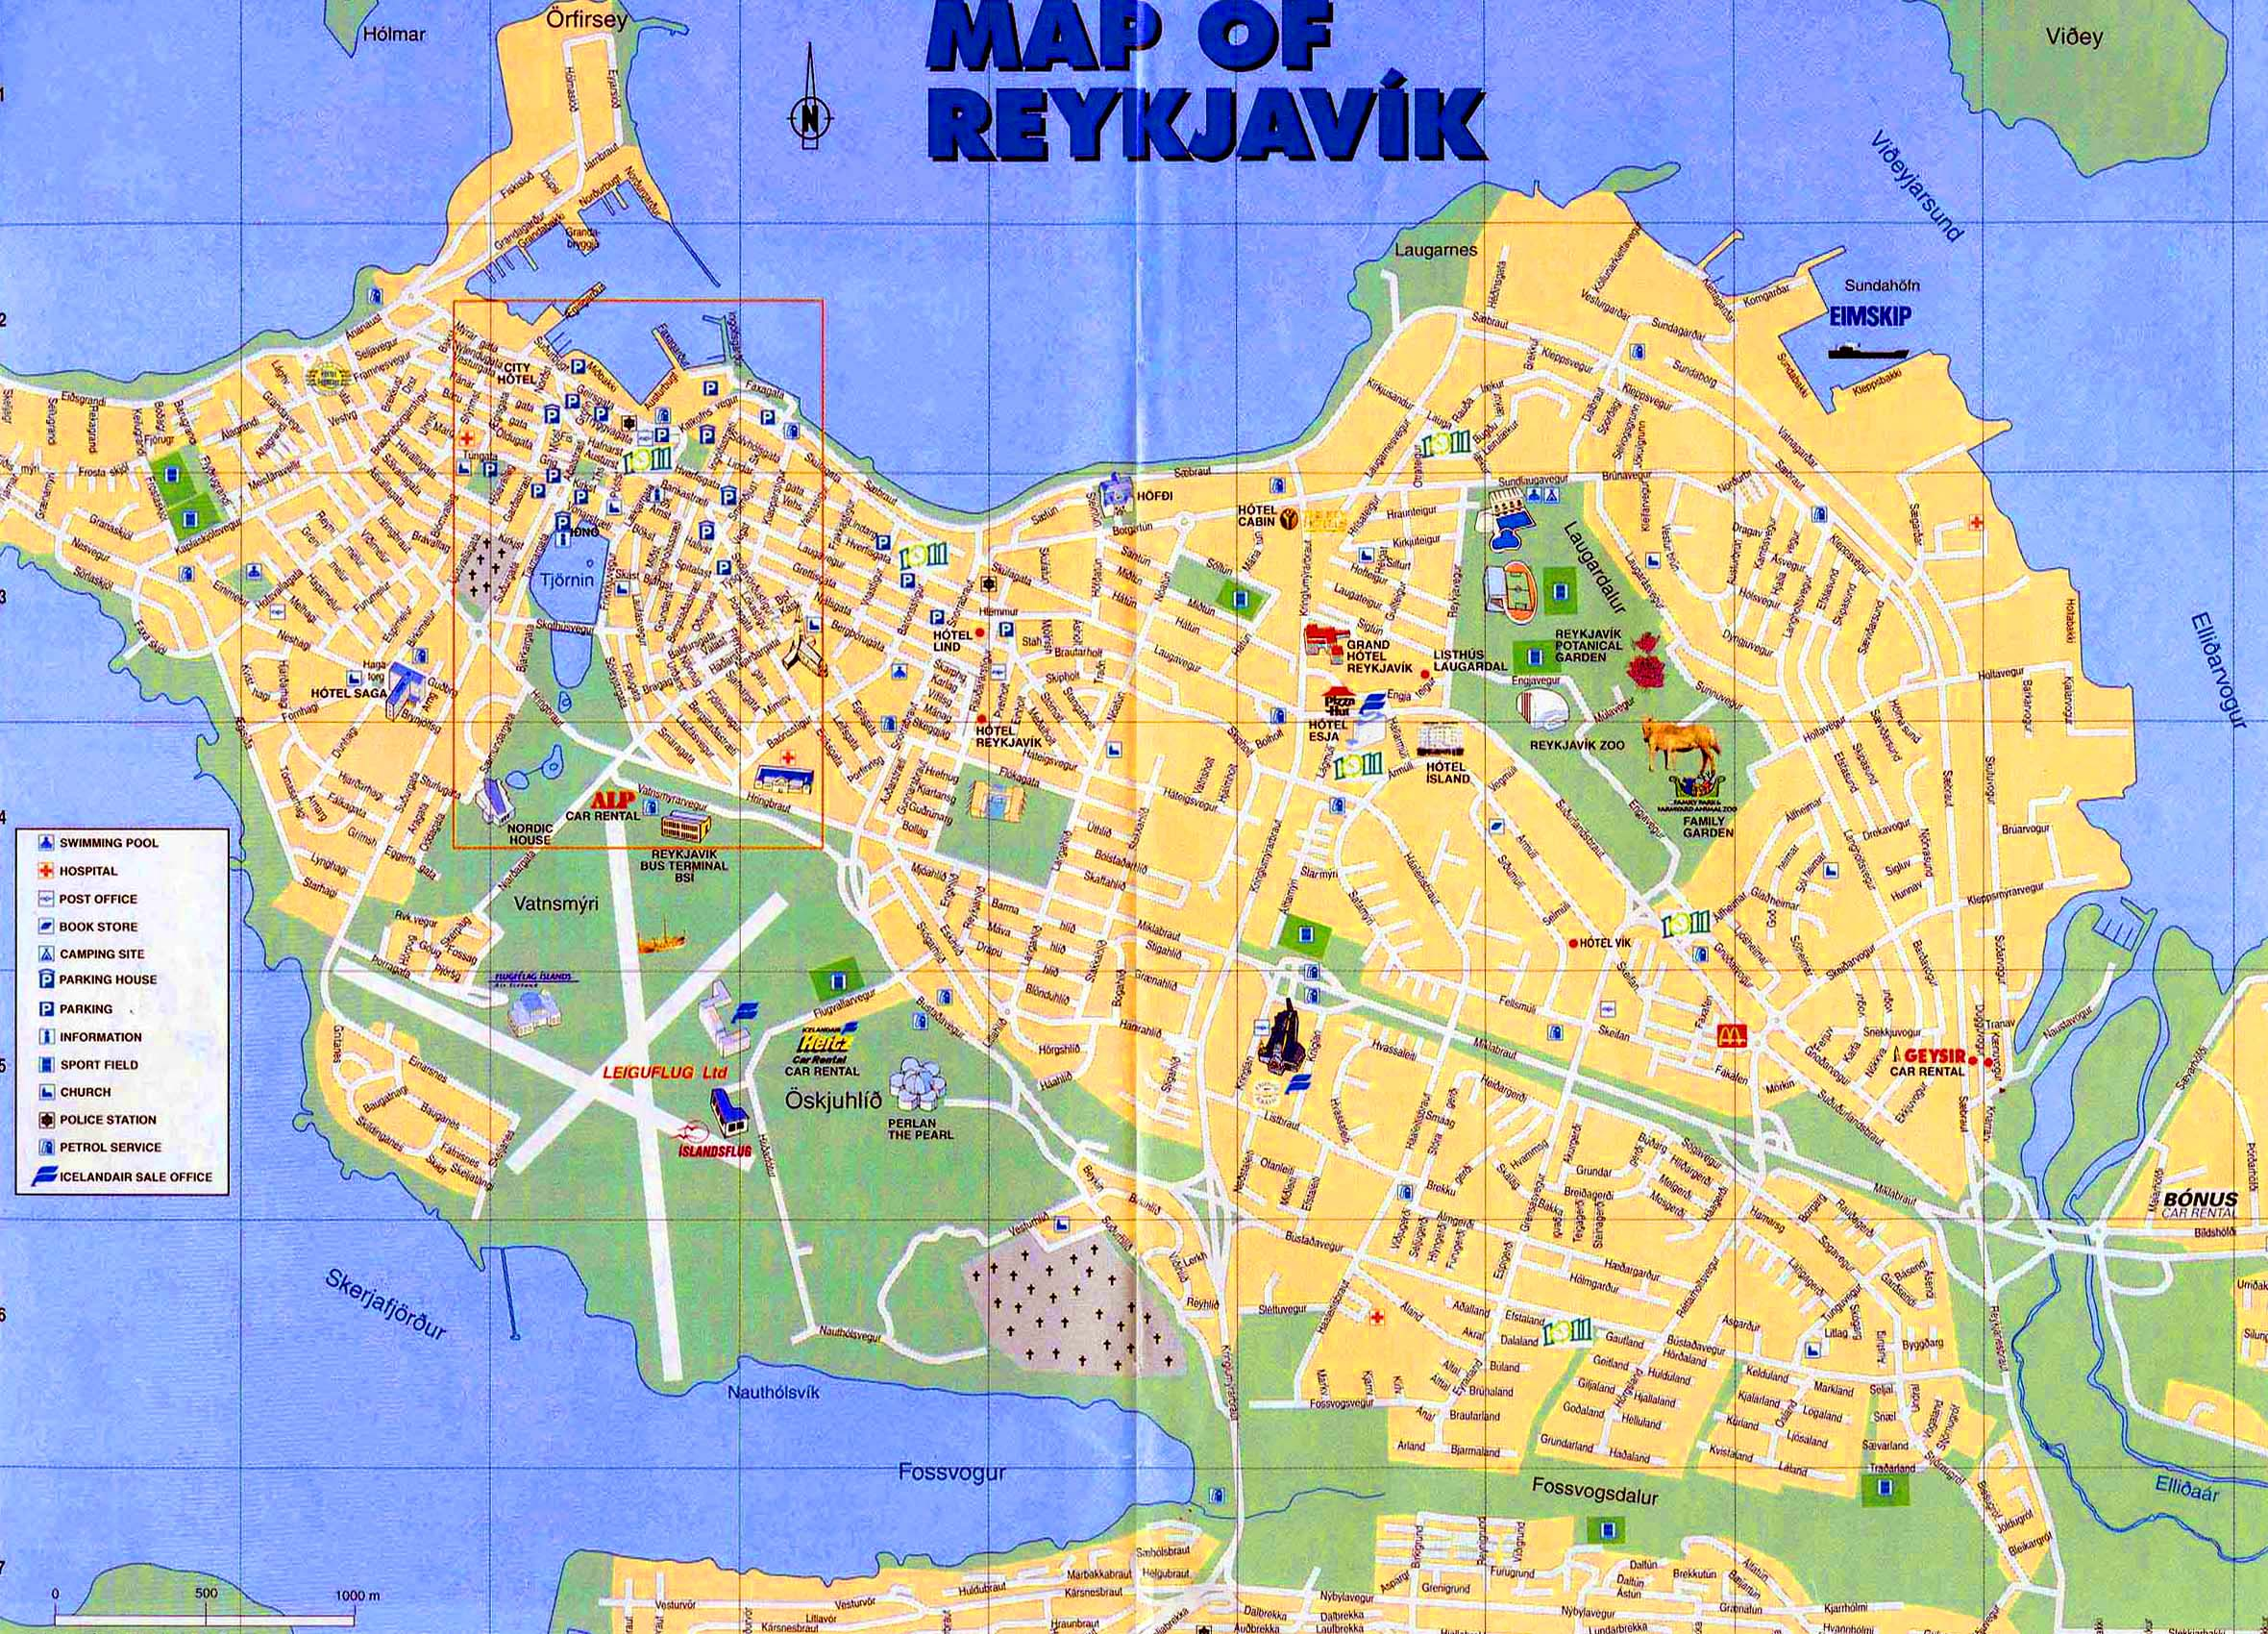 Reykjavik Iceland Map Large Reykjavik Maps for Free Download and Print | High Resolution